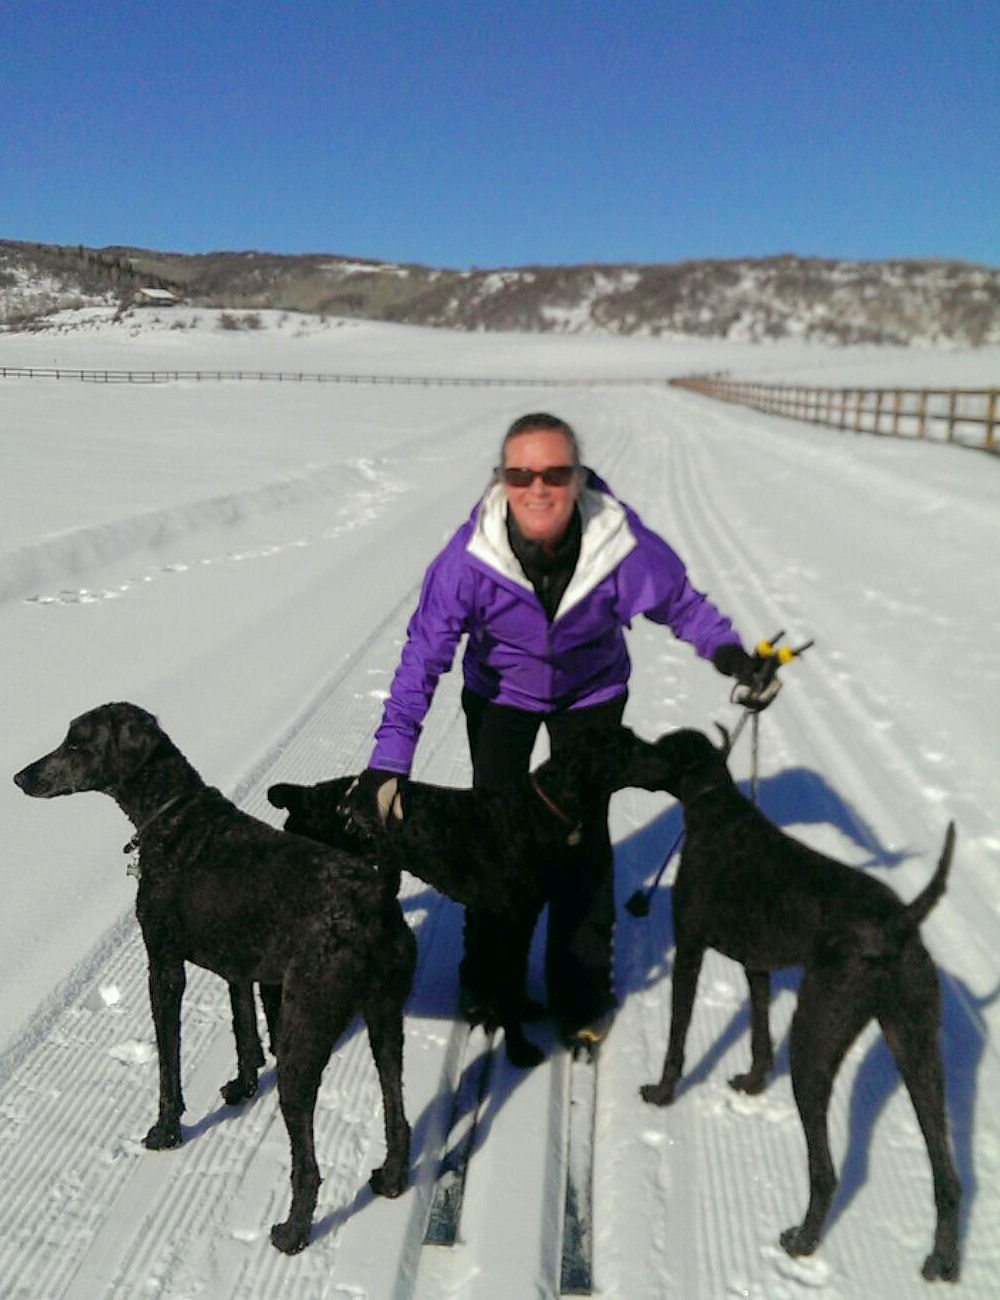 Skiing with 3 poodles